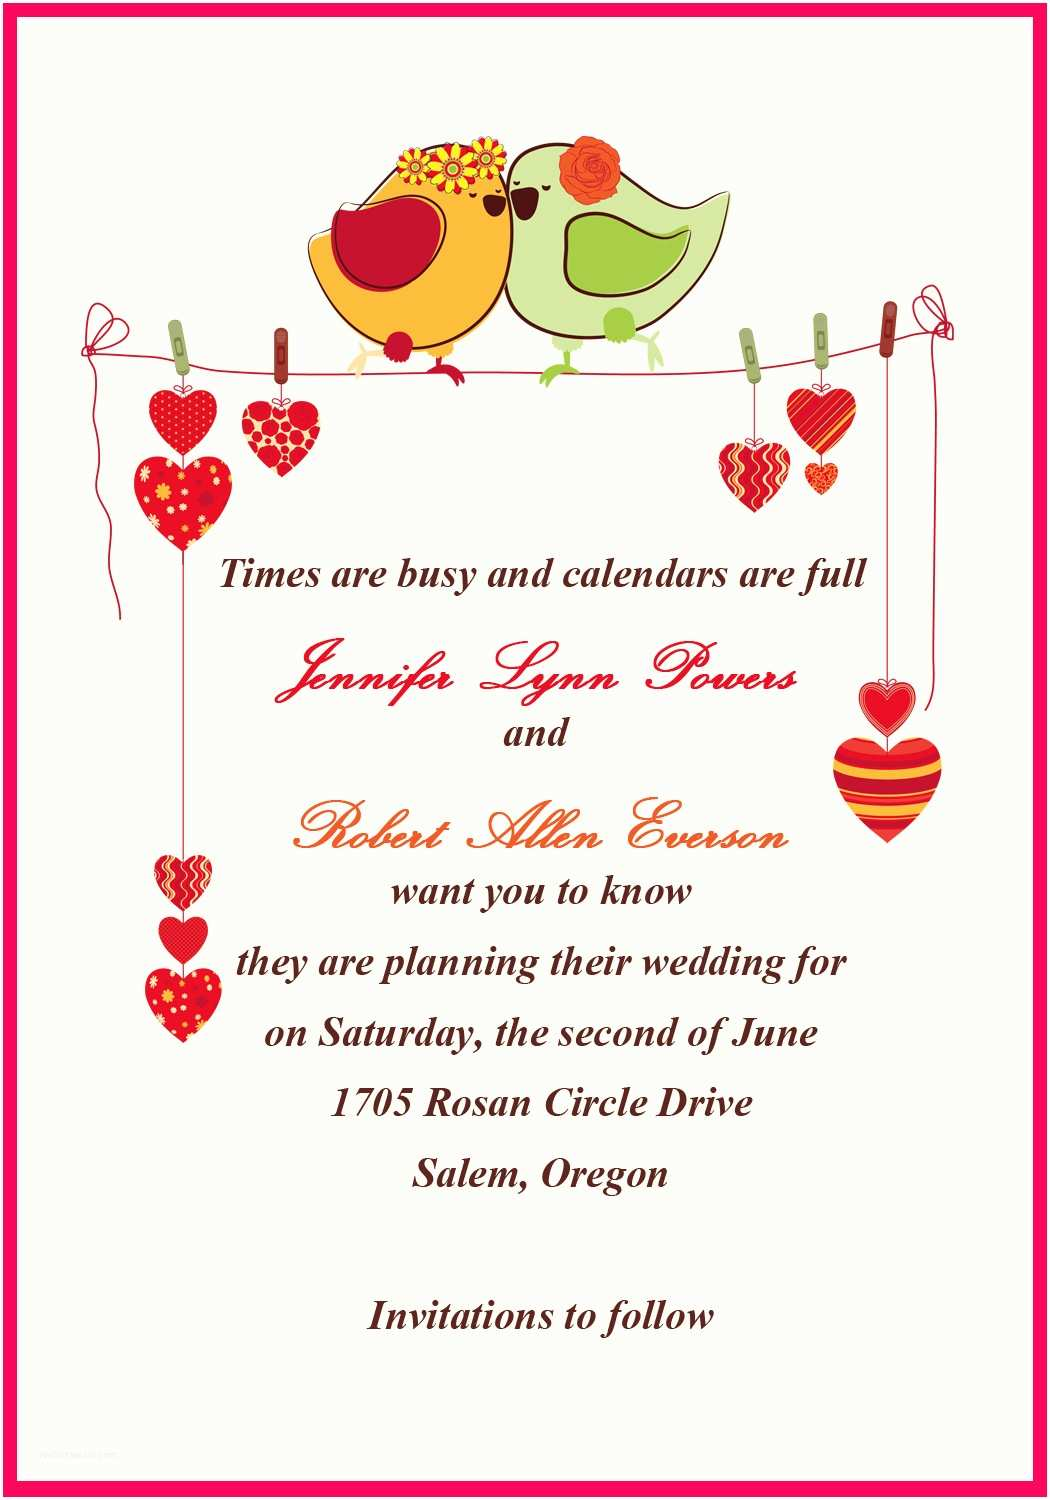 Wedding Invitation Sms Wedding Invitation with Quotes and Marriage Invitation Sms